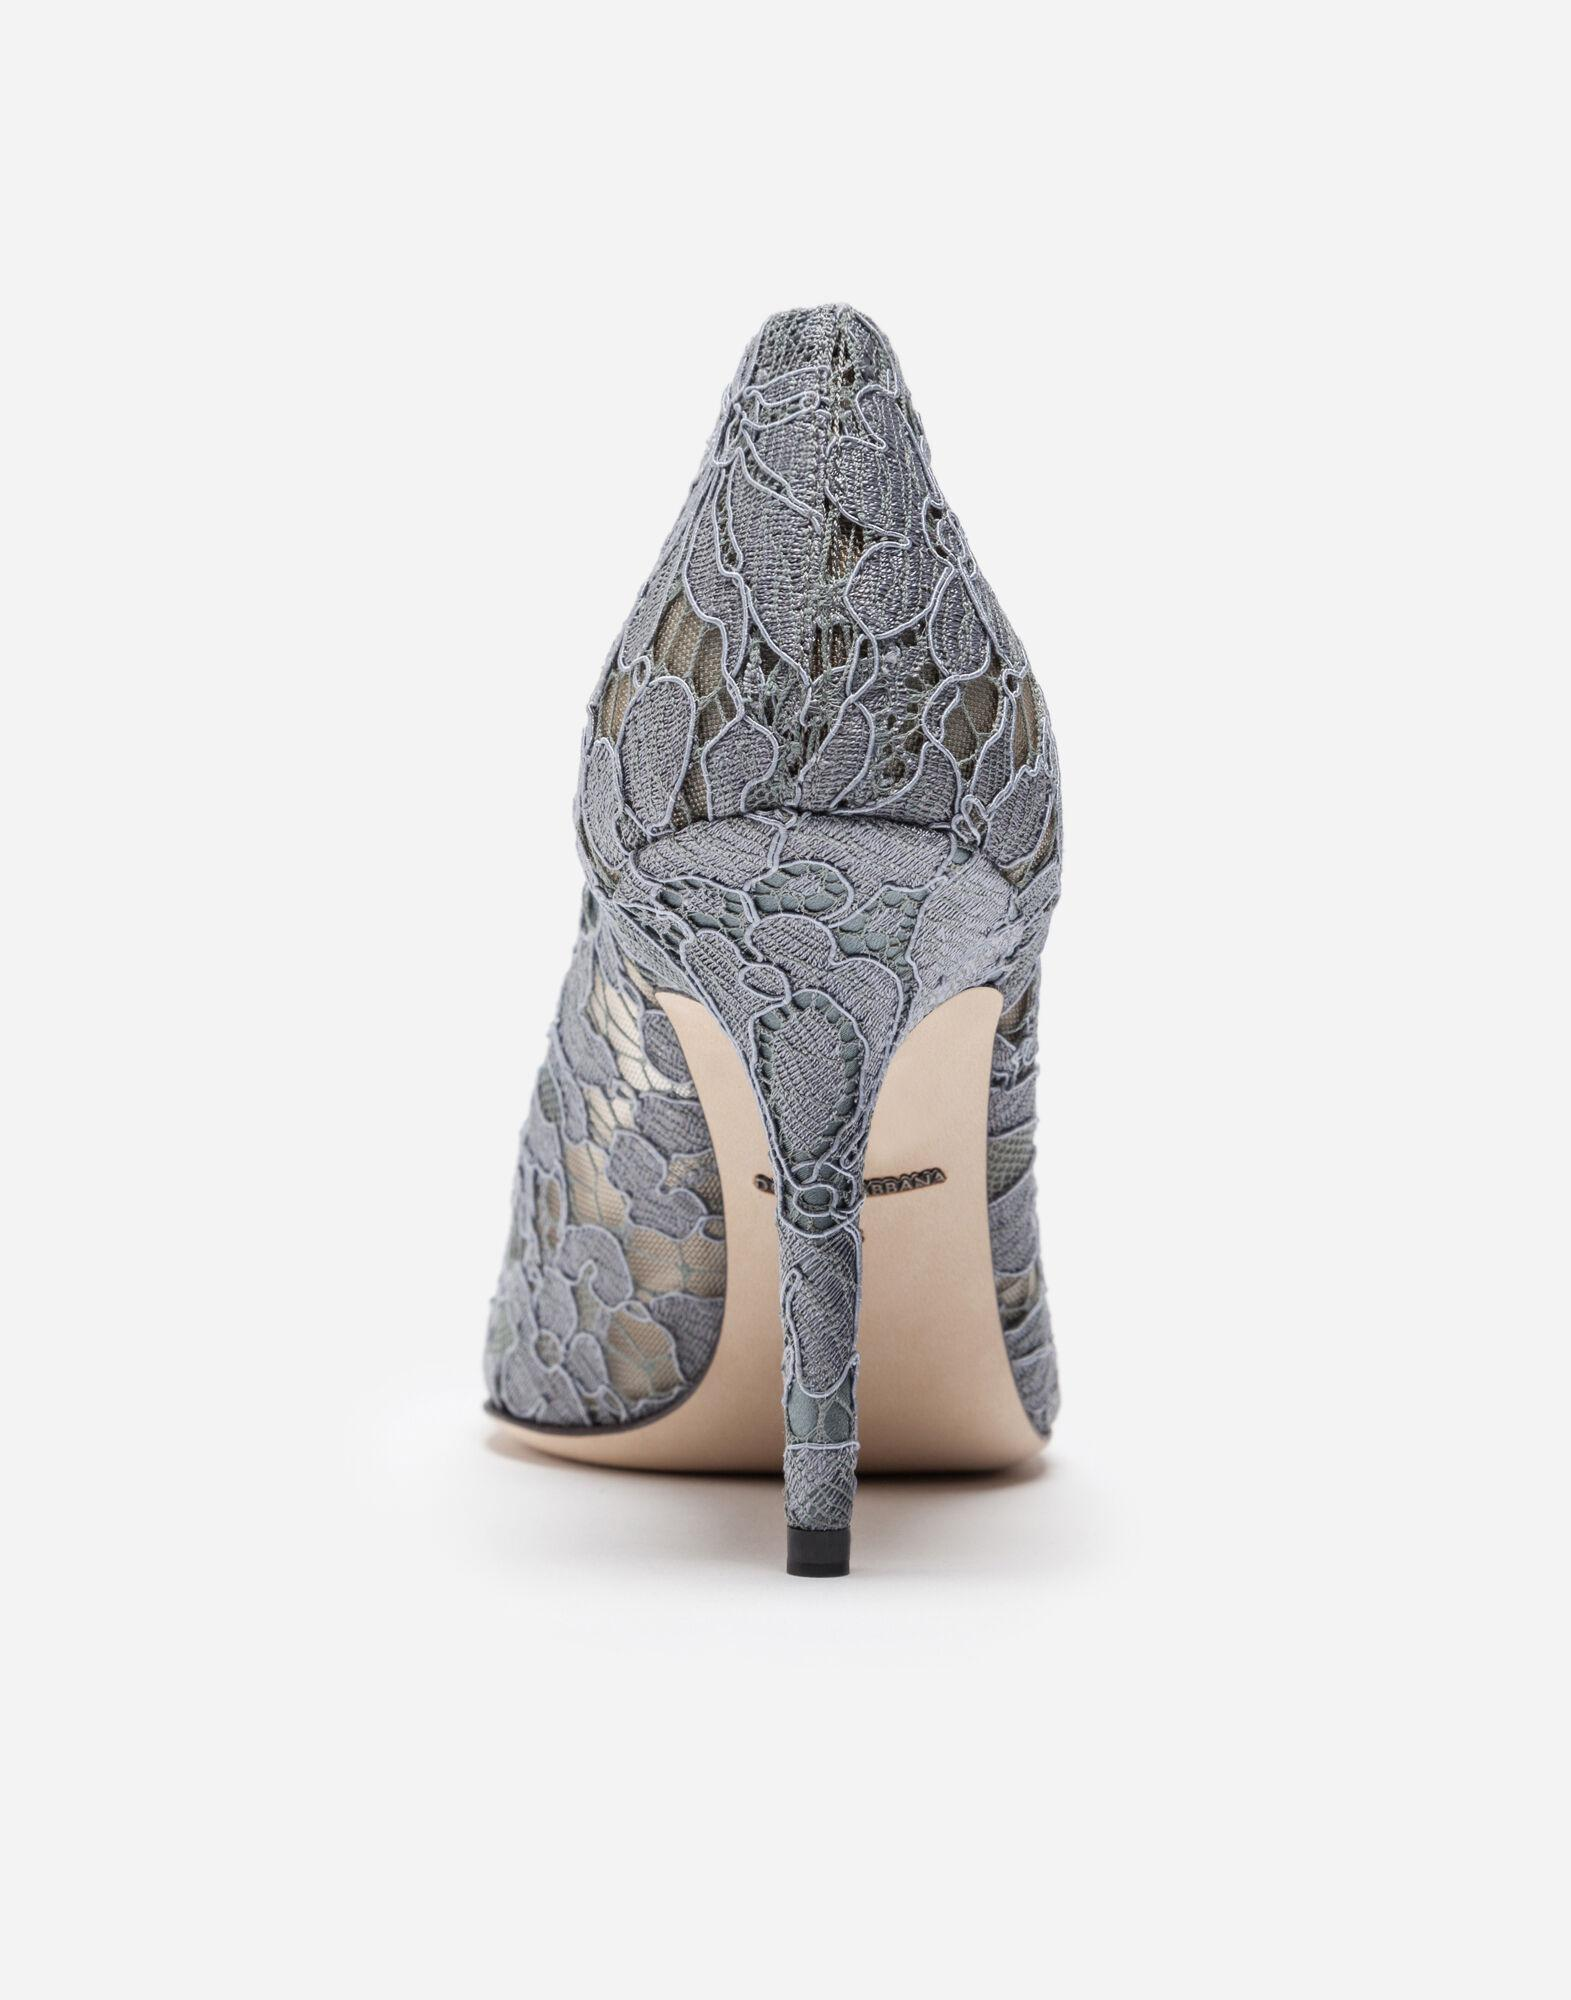 Pump in Taormina lace with crystals 3